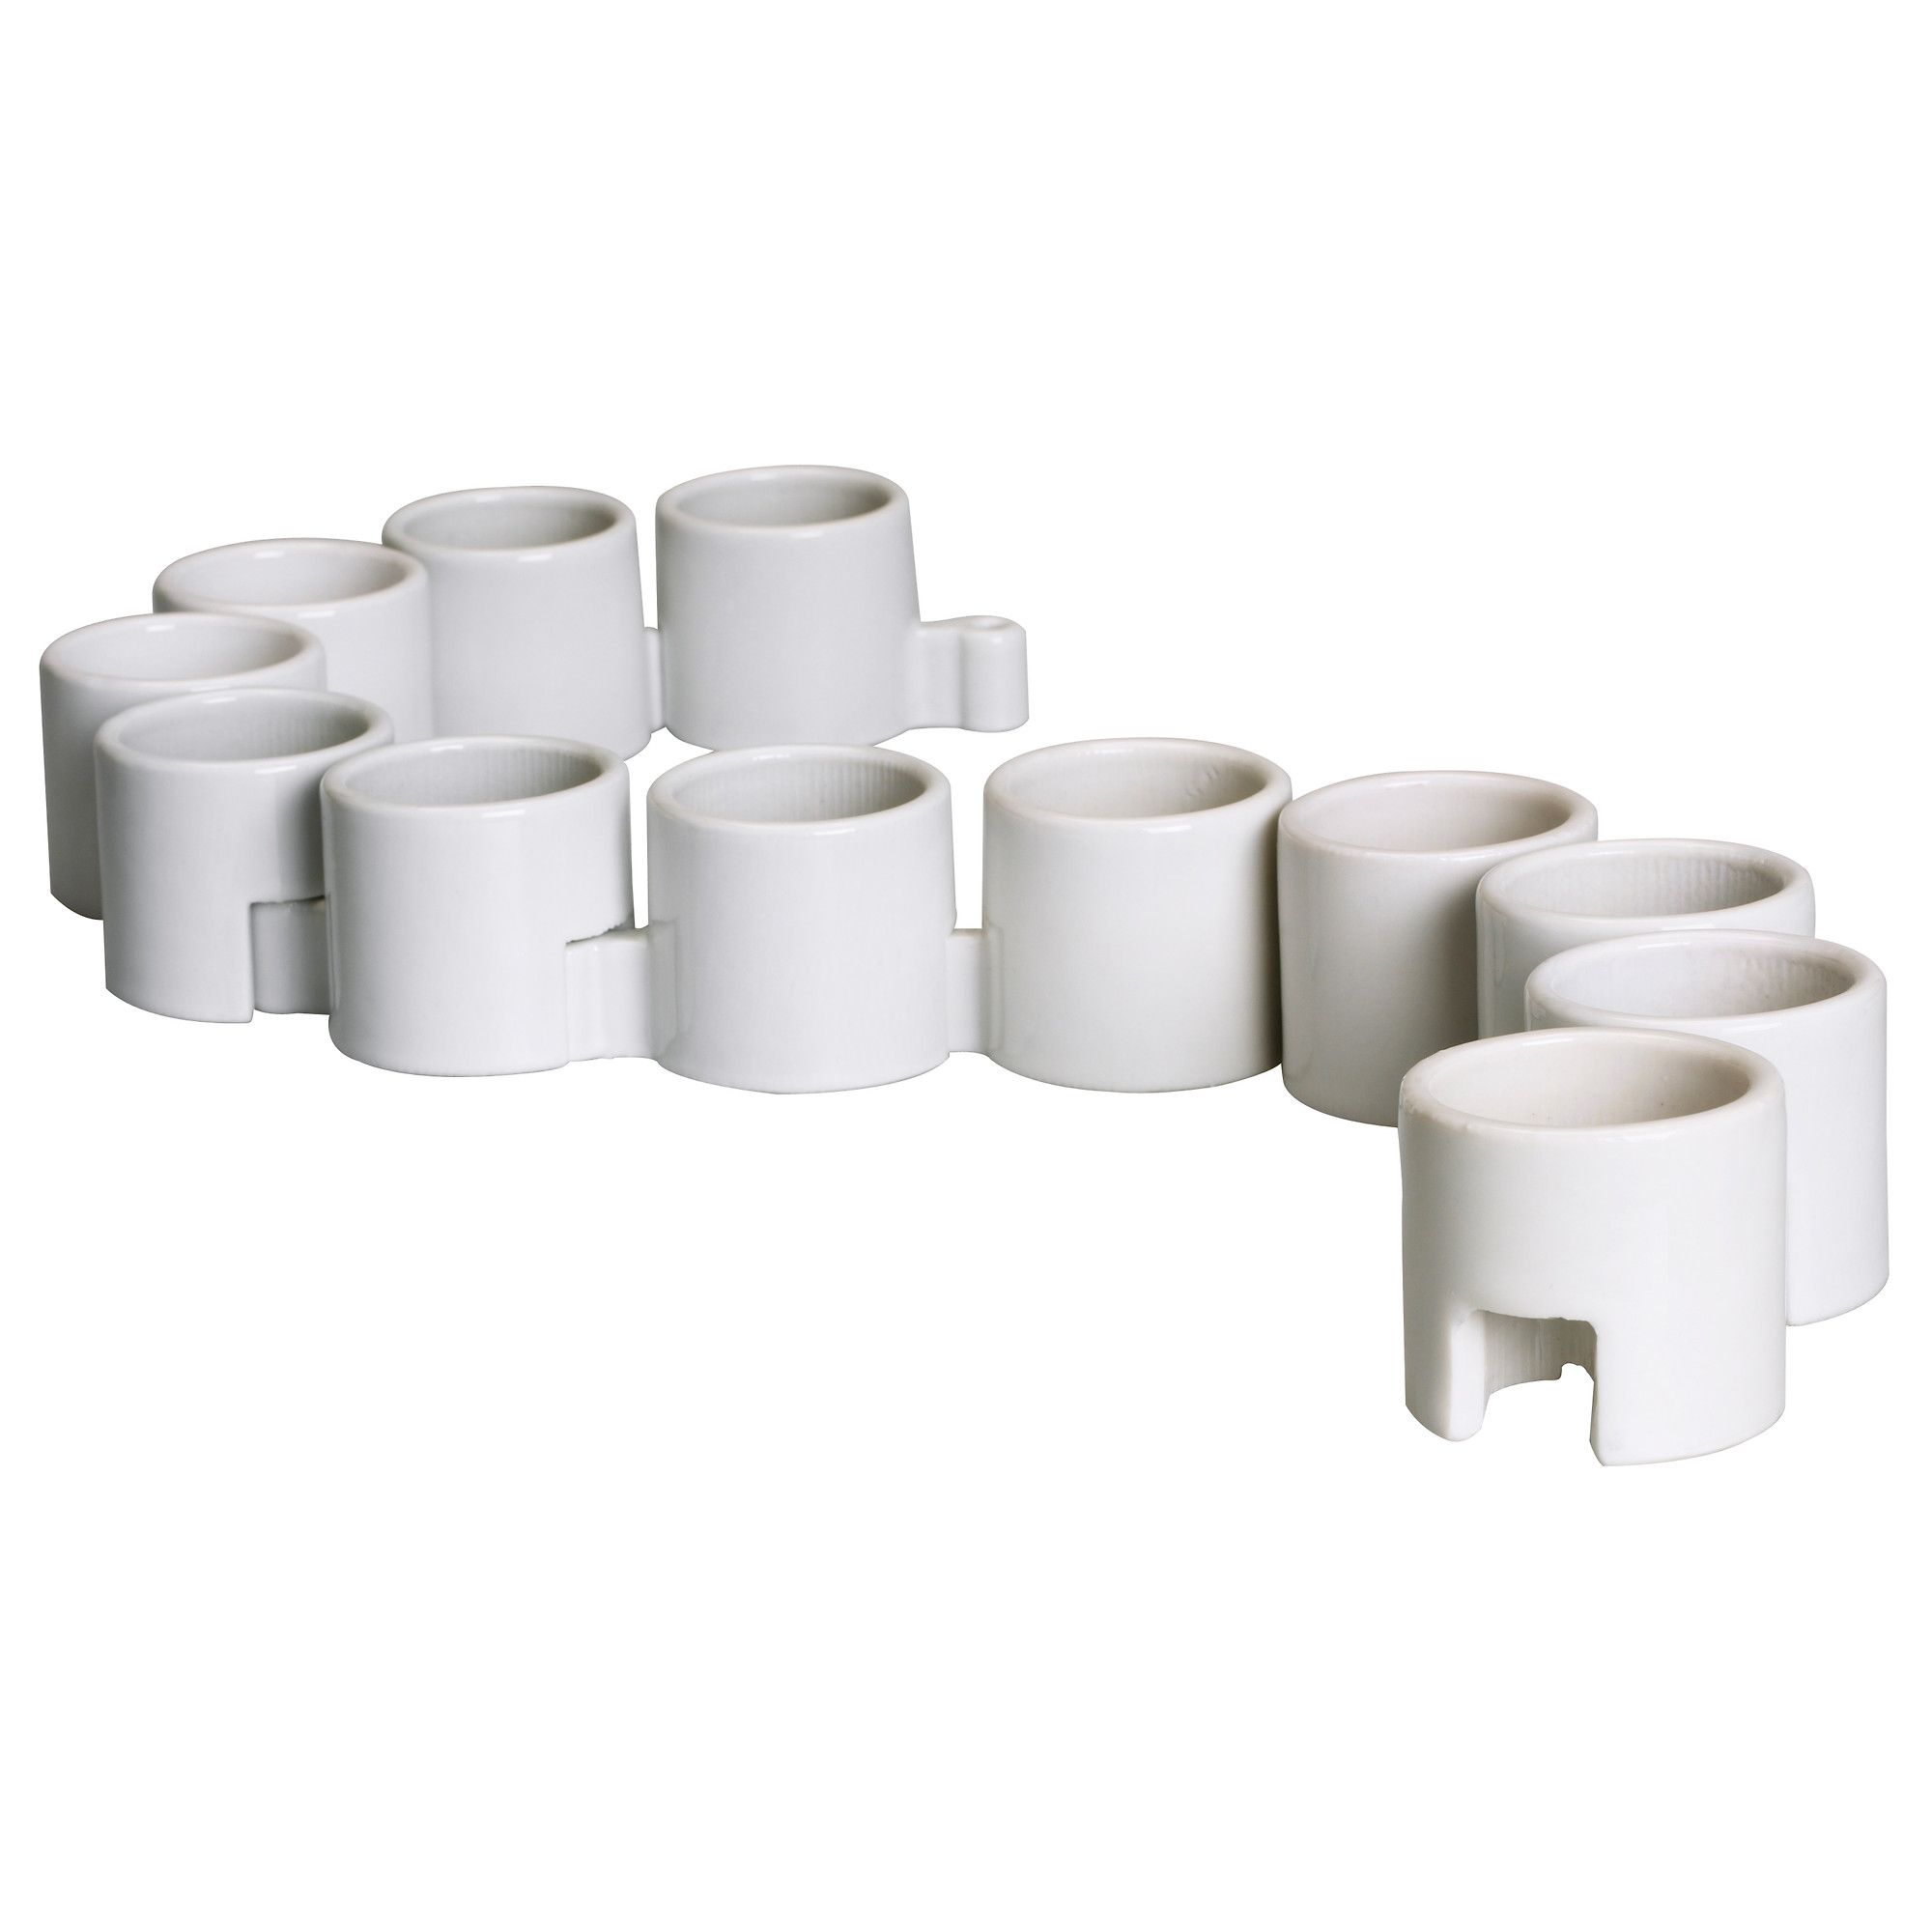 Home home decoration candles amp candle holders scented candles -  8 99ikea Ps Tealight Holder Ikea Yankee Candlesscented